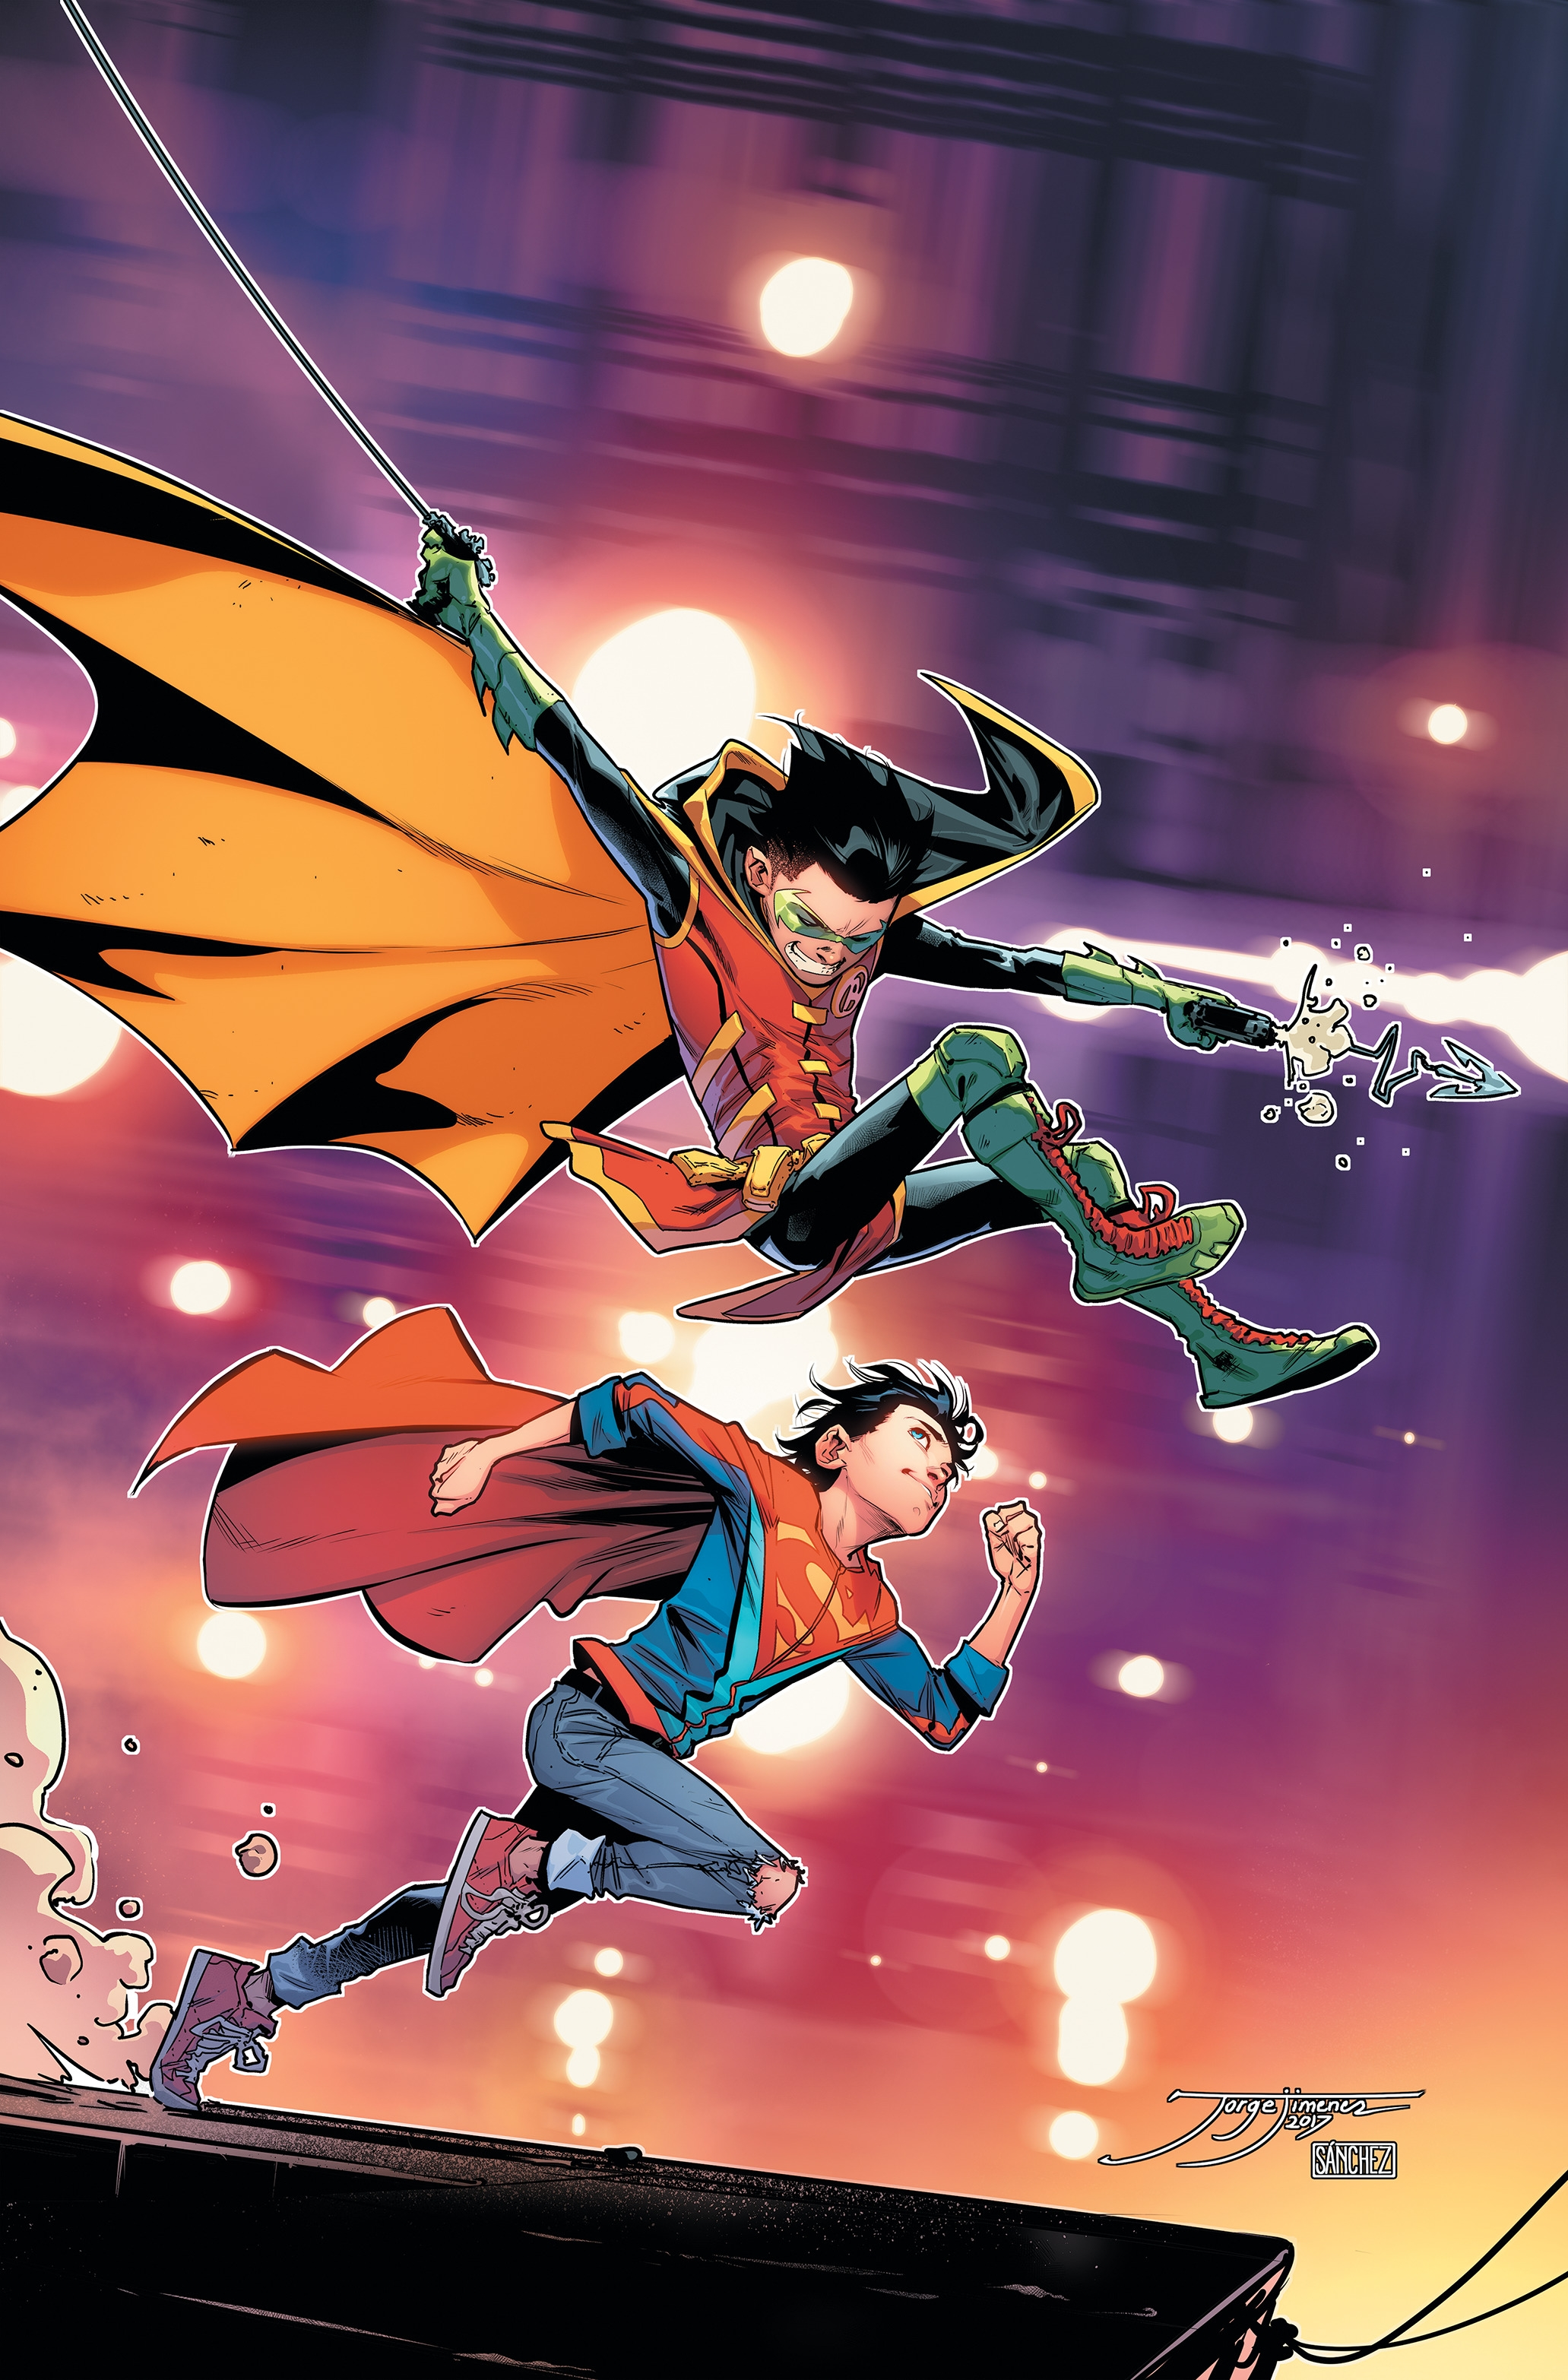 Super Sons Vol. 3 by Peter J Tomasi, ISBN: 9781401284466